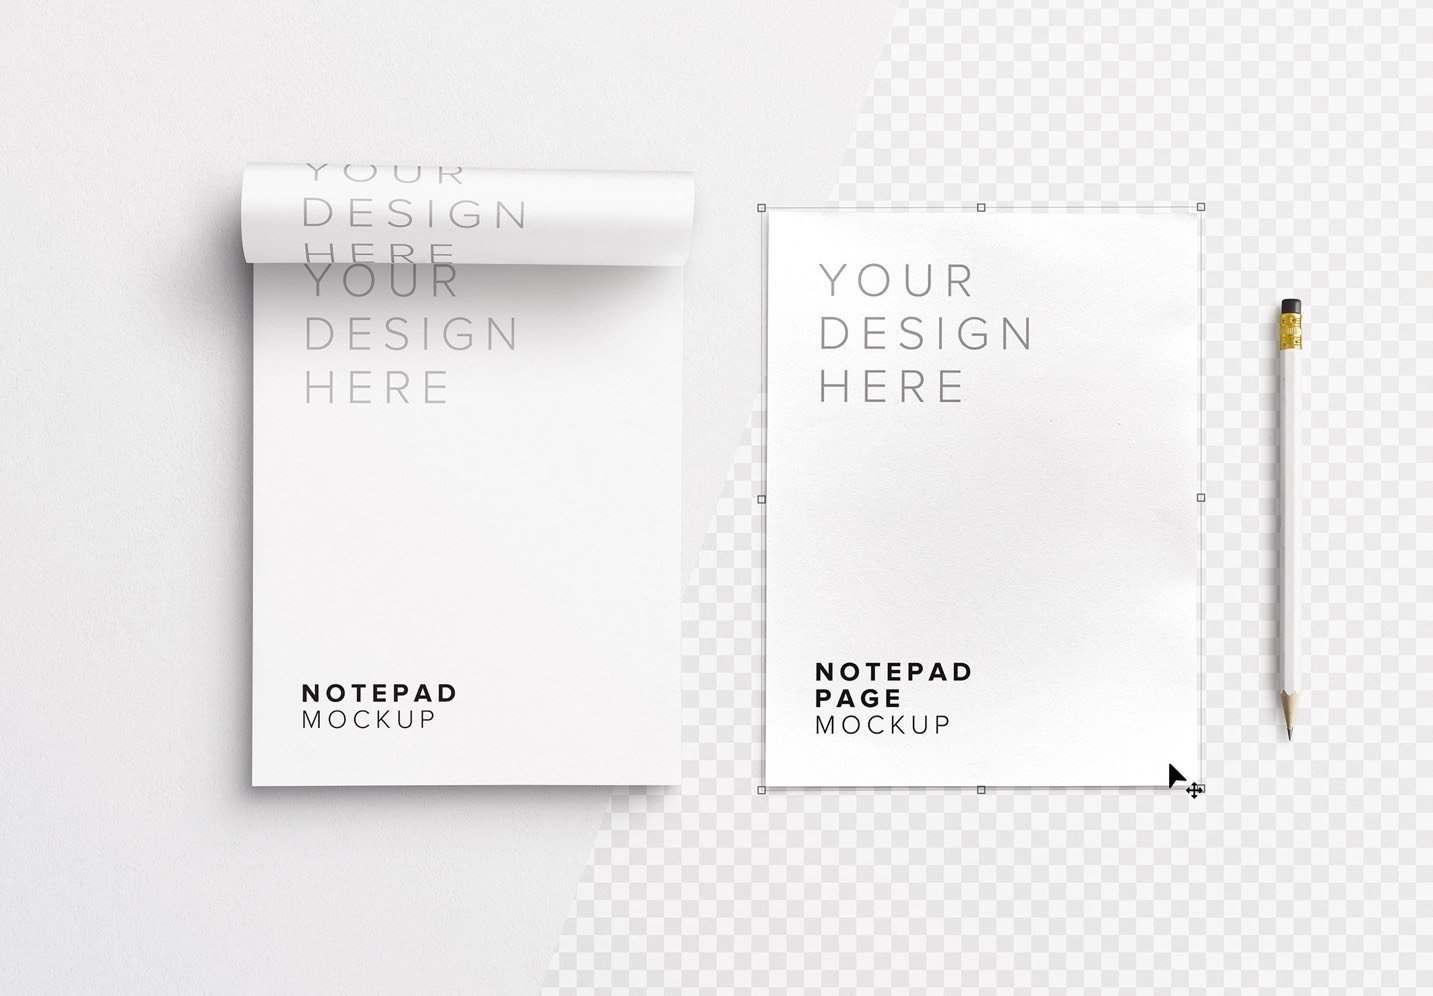 notepad w pencil mockup image01